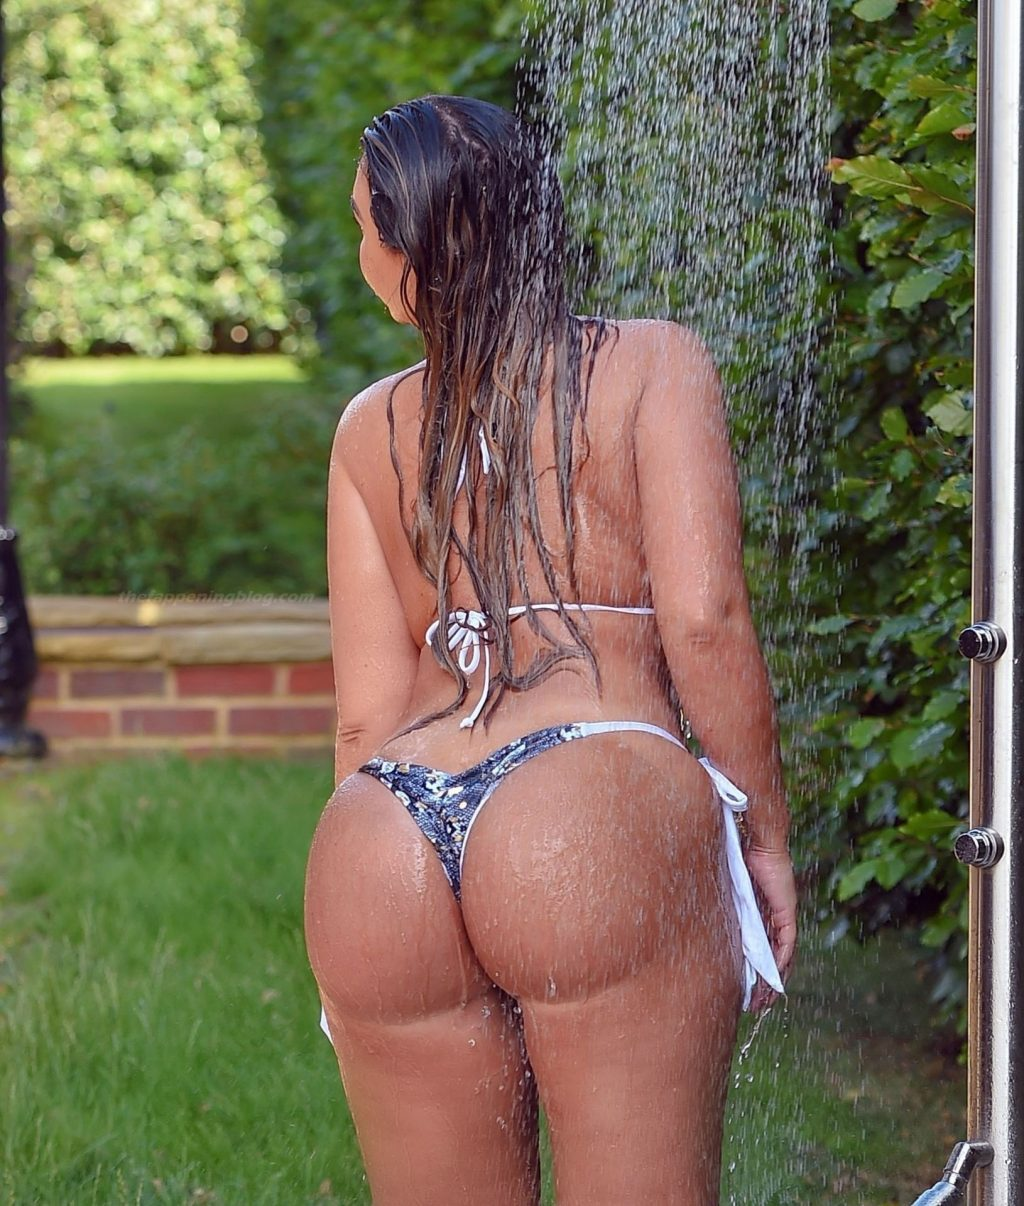 Lauren Goodger Shows Off Her Curves in a Tiny Bikini (15 Photos)